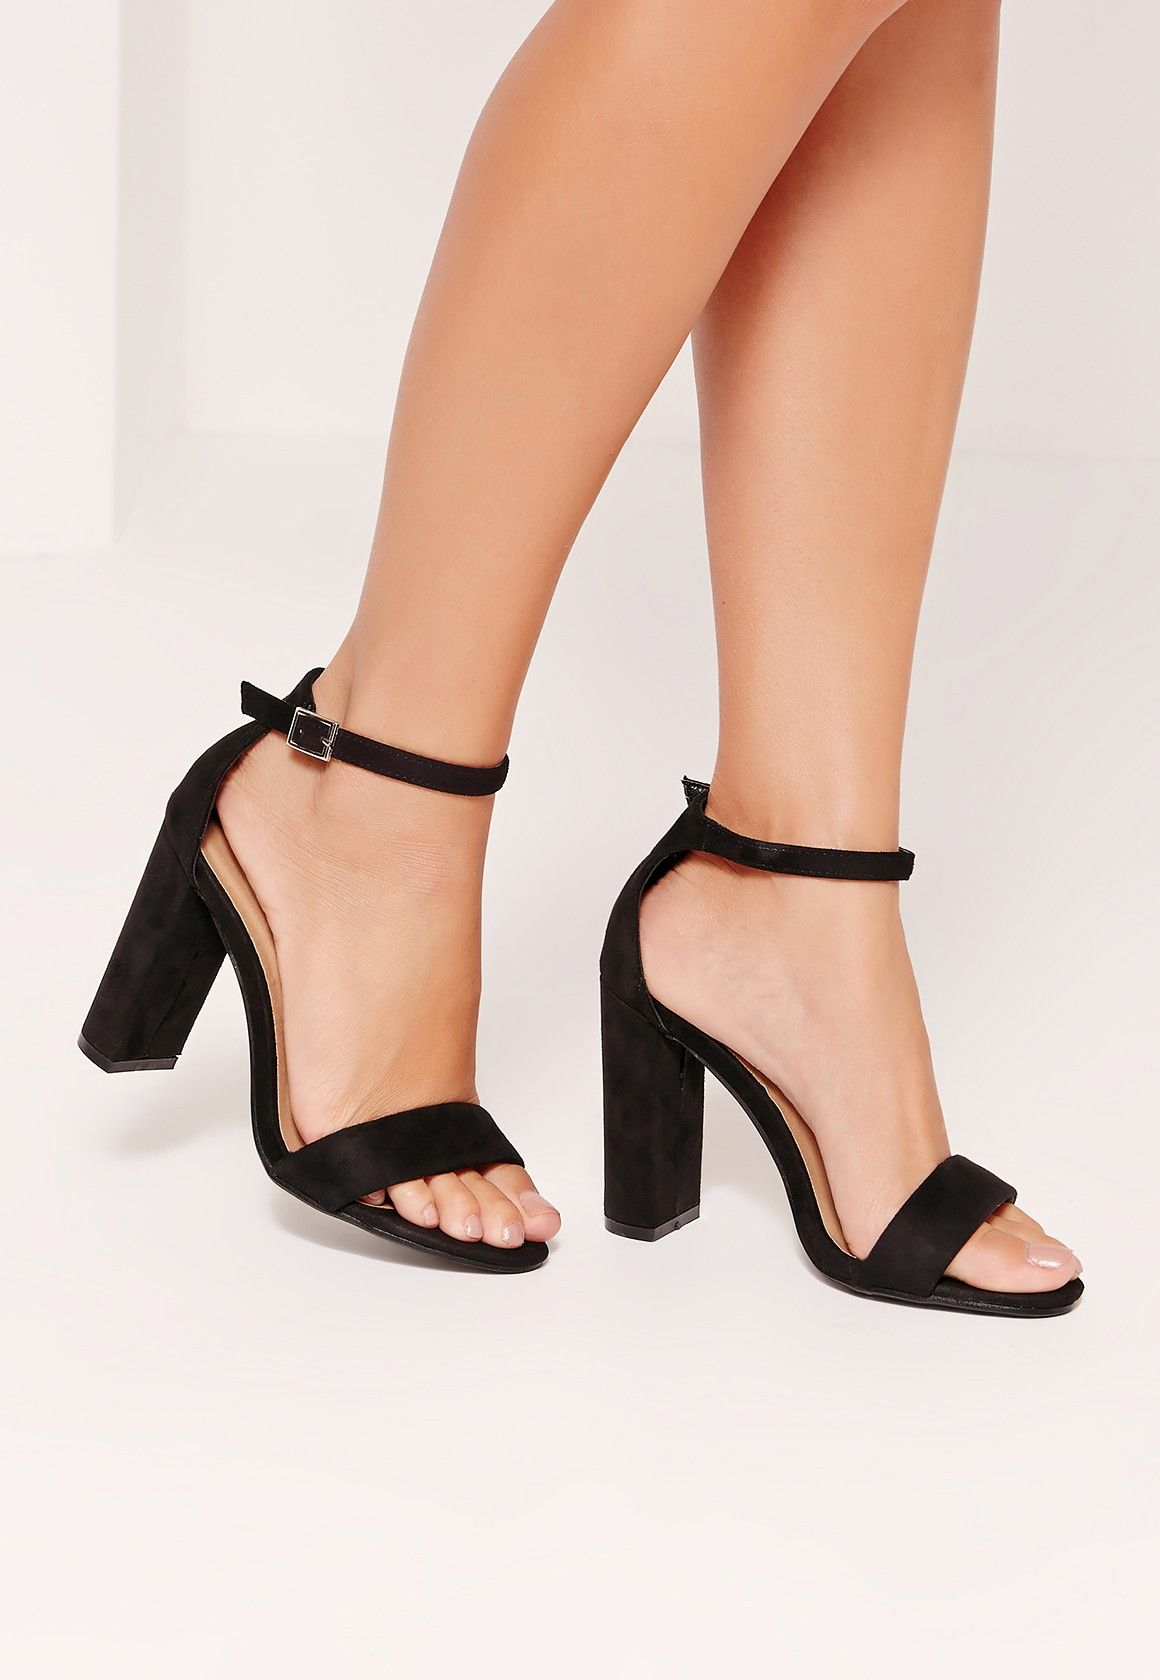 f2756cd3a78 Missguided - Thick Strap Block Heel Barely There Sandals Black New Shoes